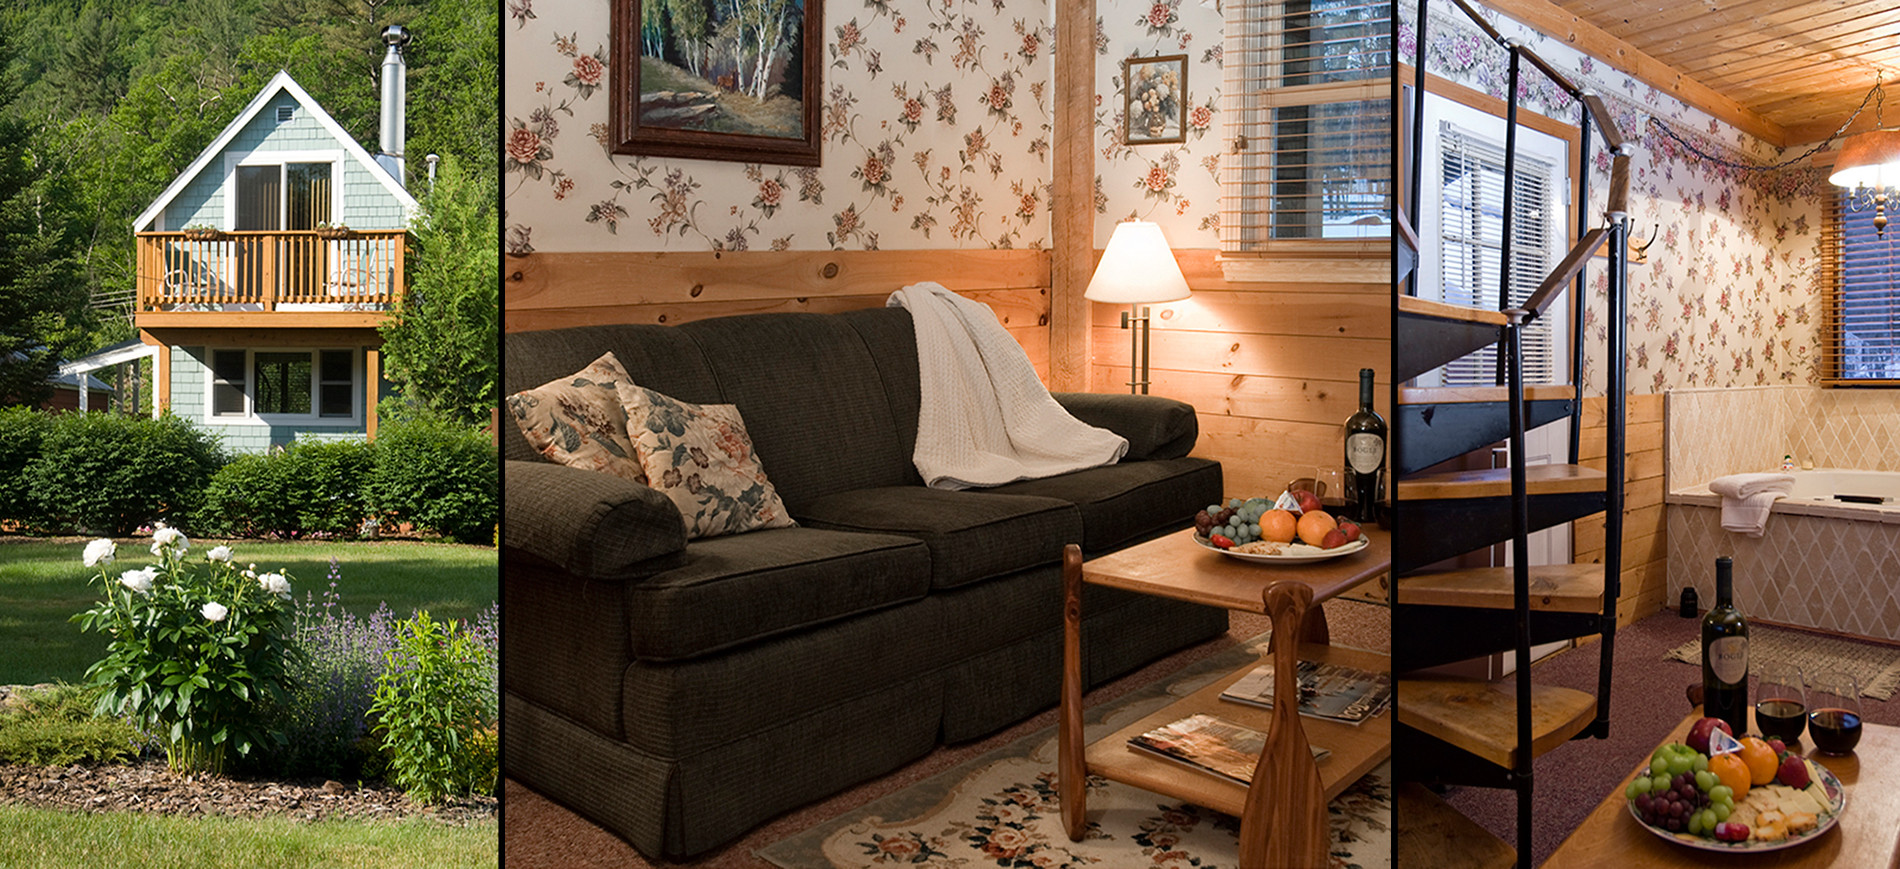 Guest cottage with green loveseat, canoe paddle coffee table, Adirondack shelving, narrow spiral staircase to second floor, green exterior of cottage with balcony in summer